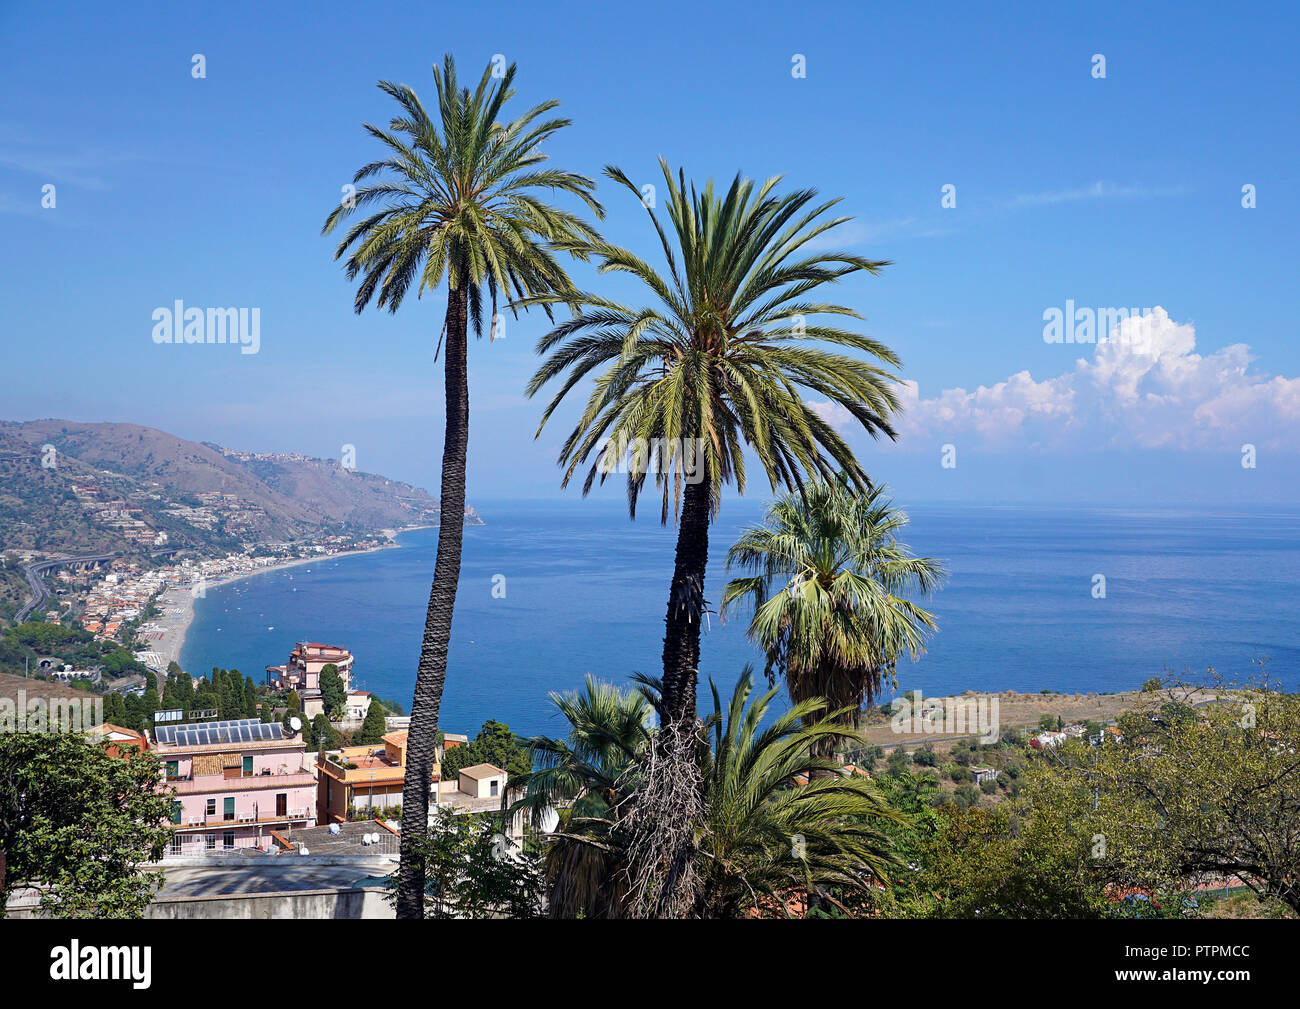 Splendid view from Taormina to the beach of Mazzeo, Sicily, Italy - Stock Image